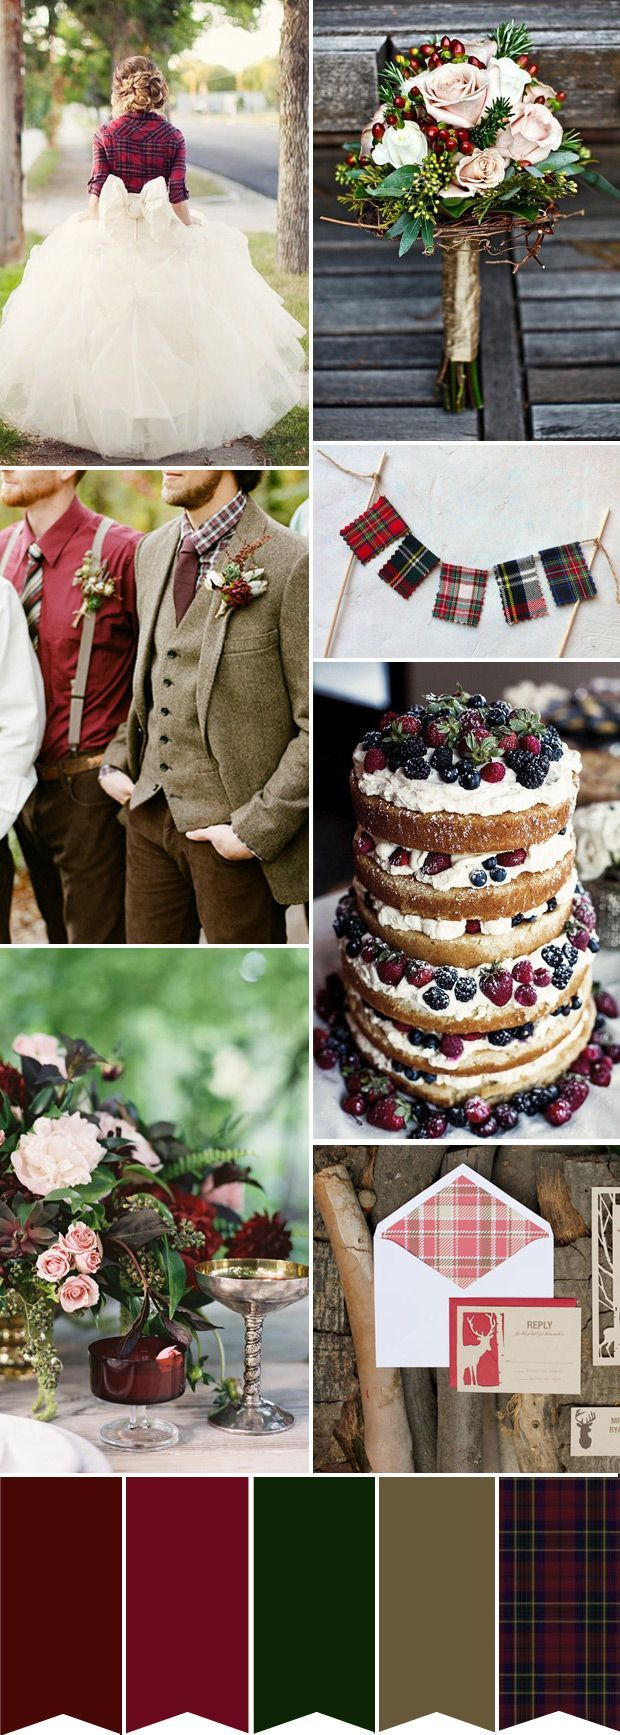 Outside fall wedding decorations february 2019  best Winter Wedding Colors images on Pinterest  Casamento